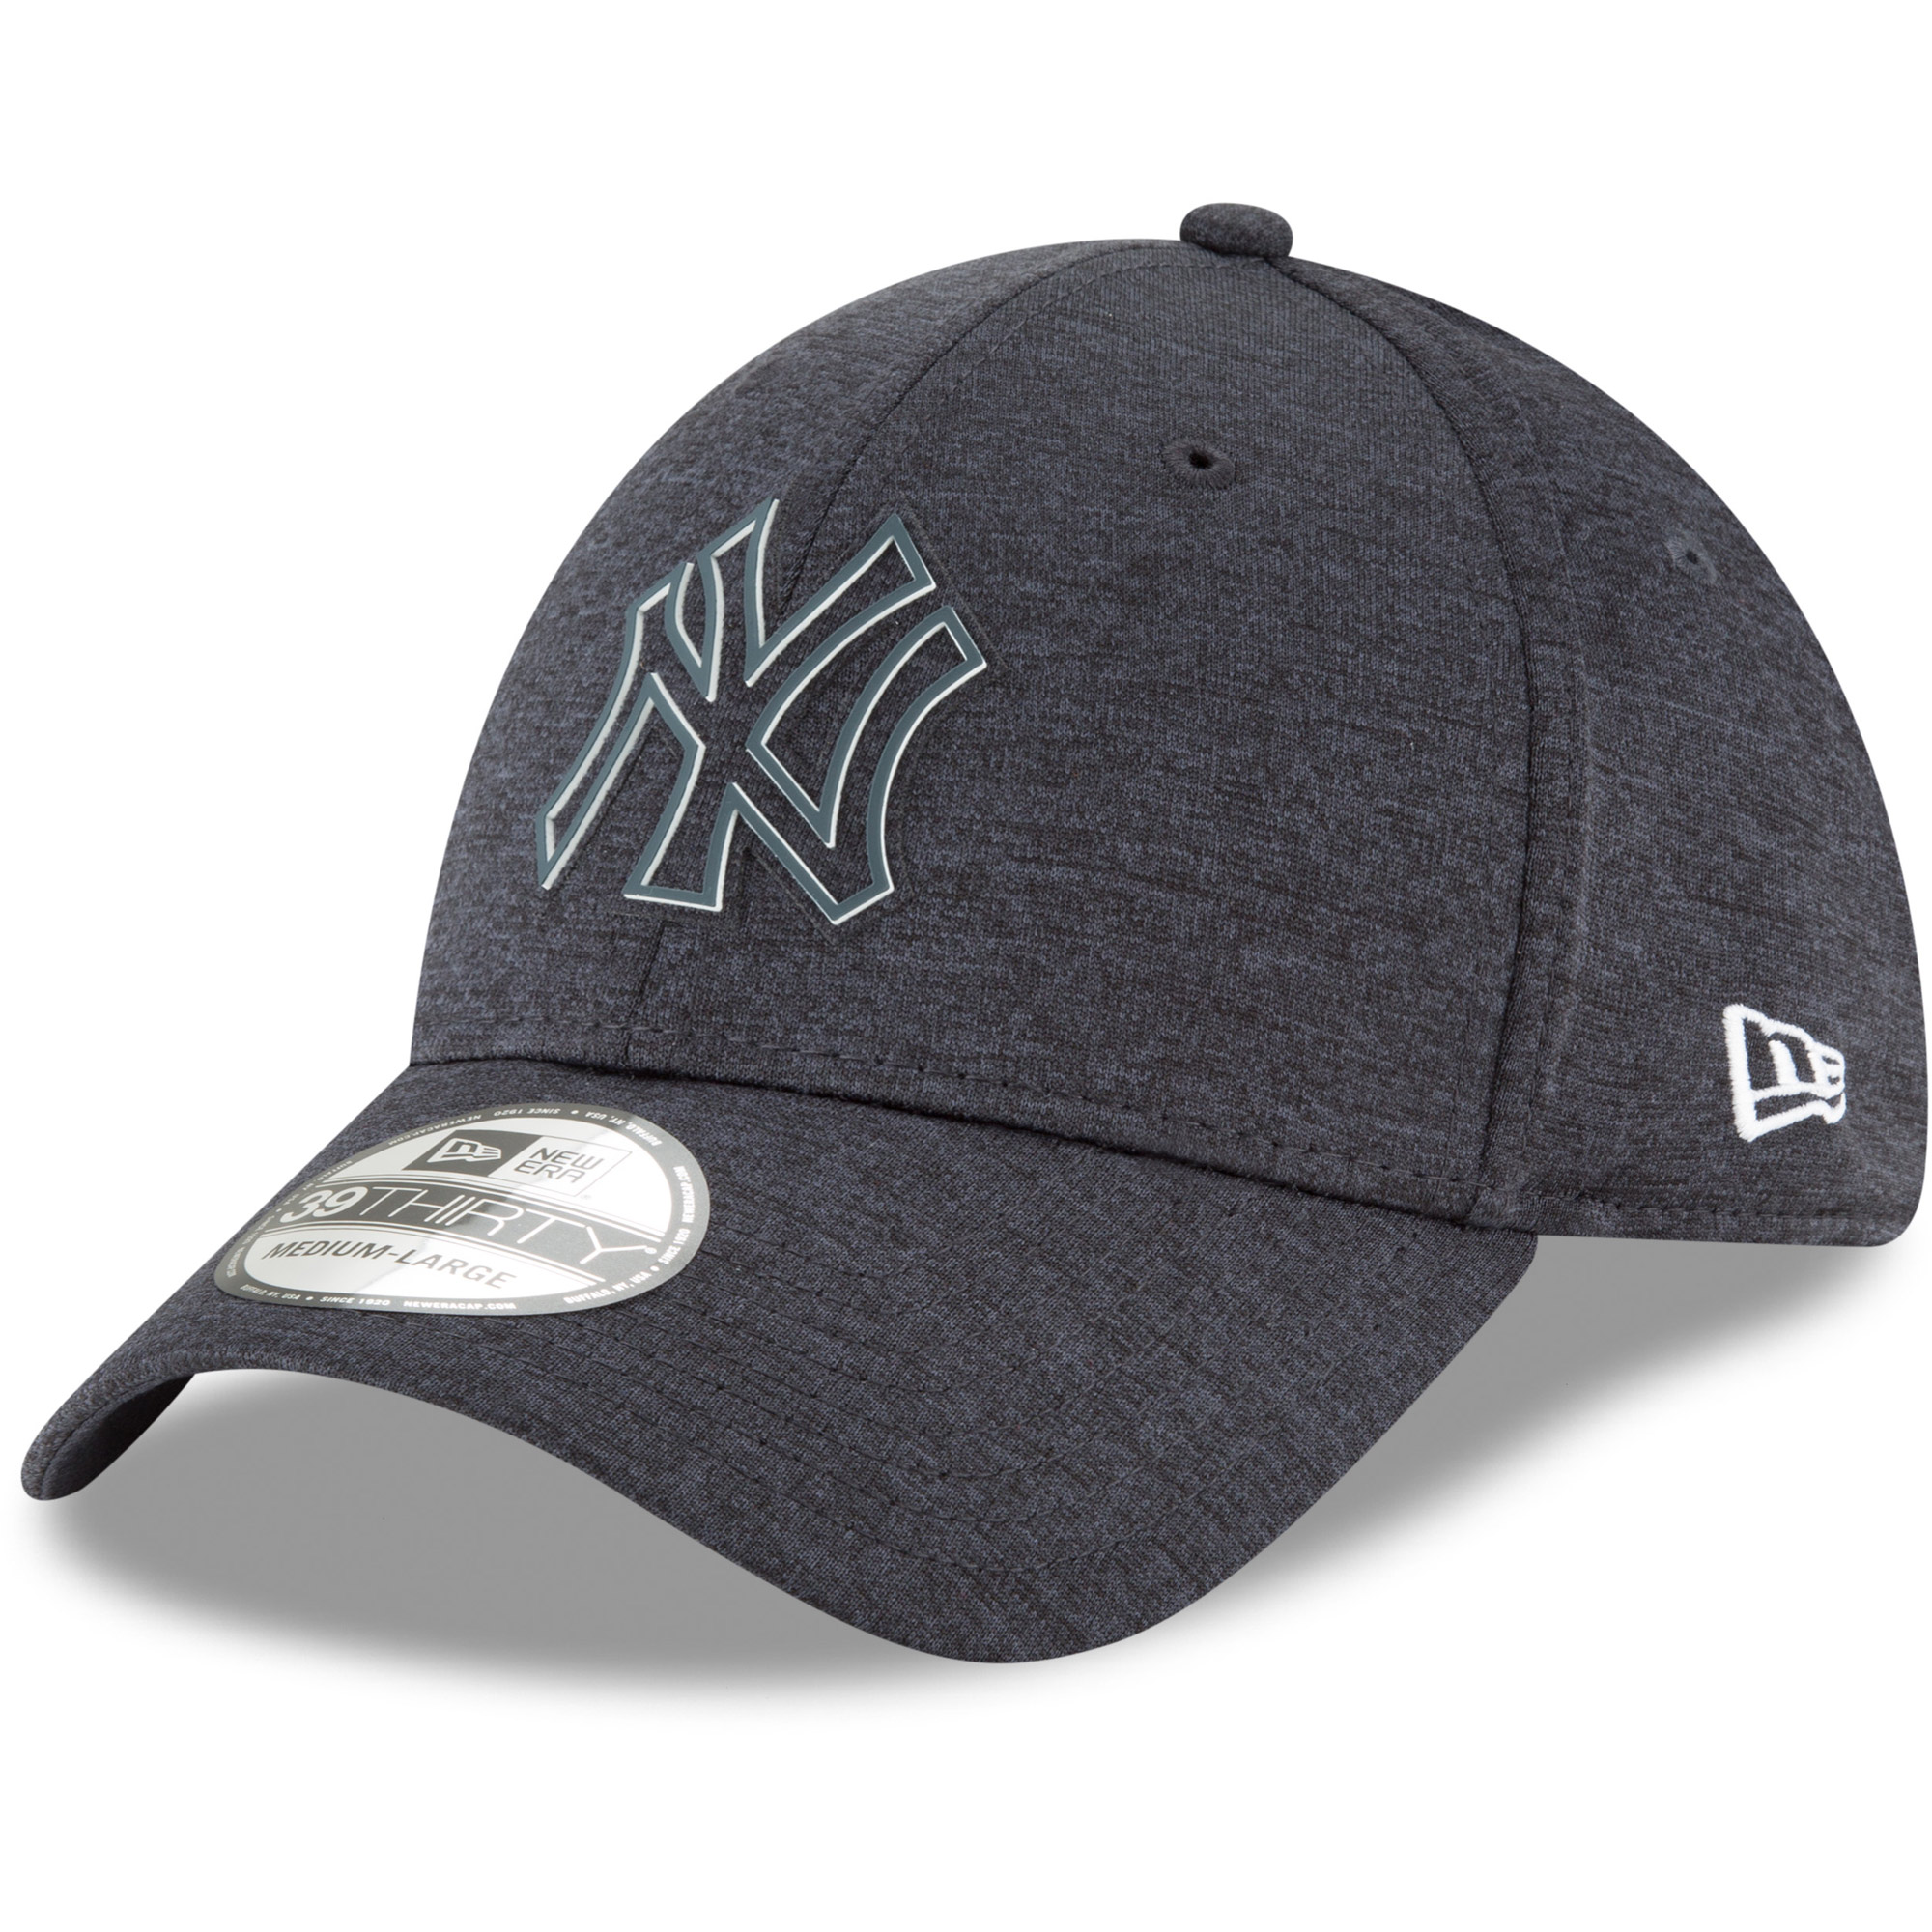 New York Yankees New Era Youth 2018 Clubhouse Collection Classic 39THIRTY Flex Hat - Navy - Child/Yth